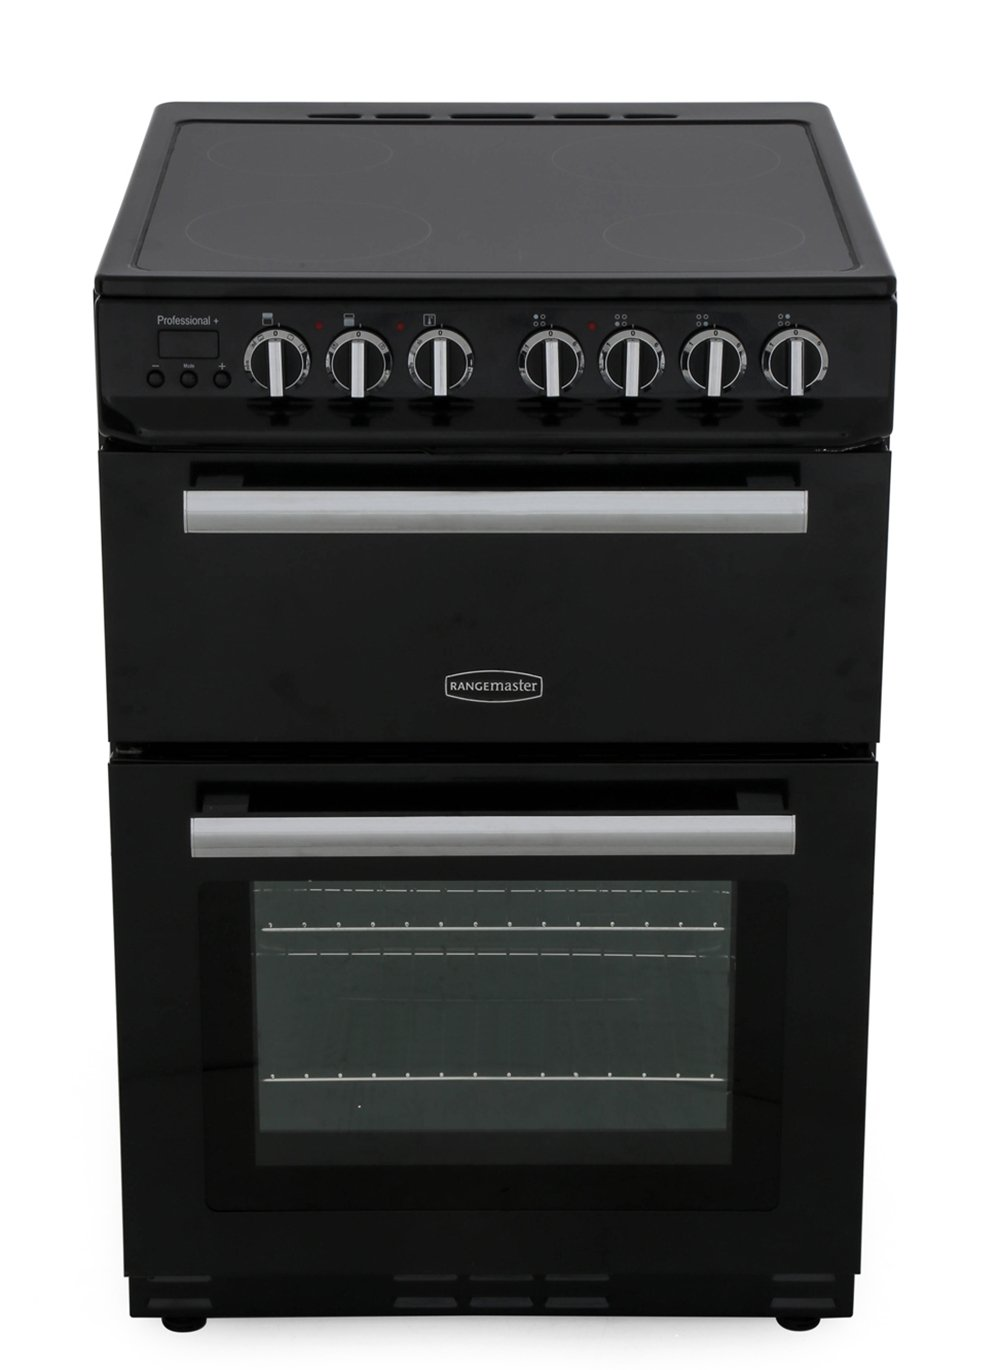 Rangemaster PROP60ECBL/C Professional Plus 60 Black with Chrome Trim Ceramic Electric Cooker with Double Oven